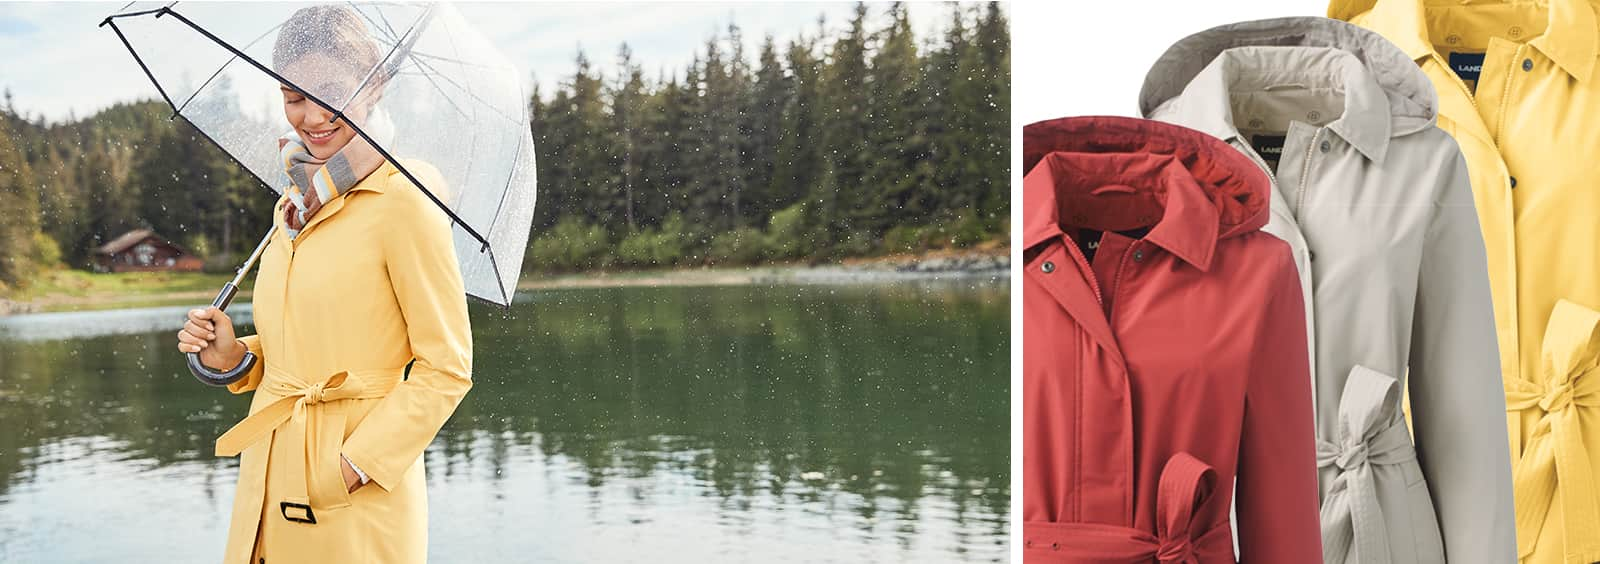 How to Beat the Rainy Day Blues: Women's Jackets to Keep You Dry